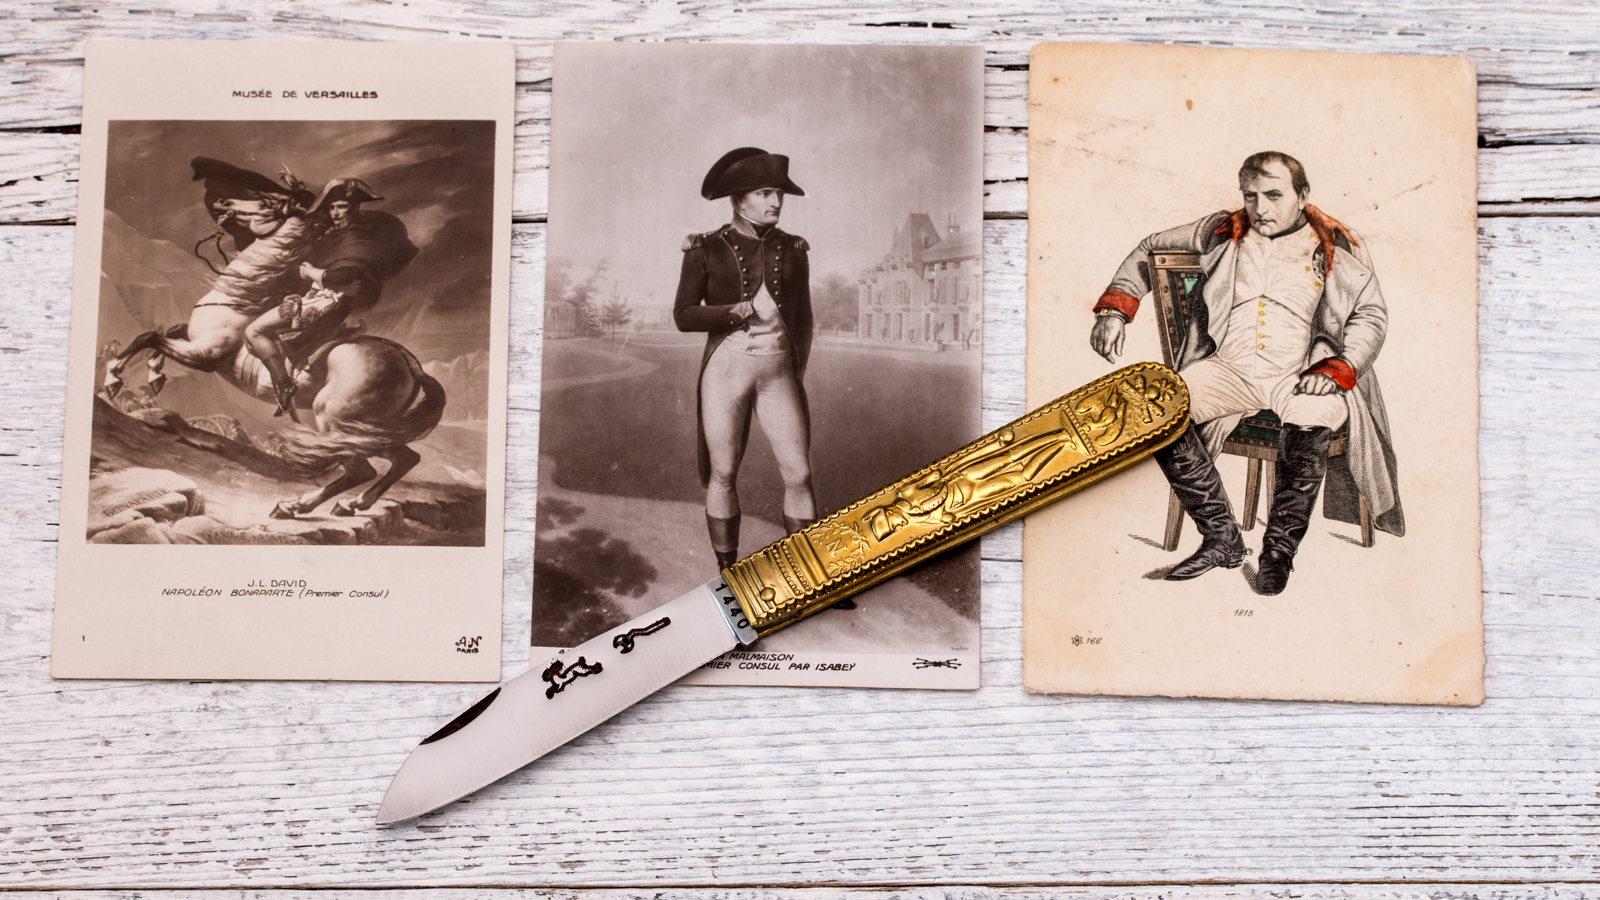 Cognet & Couperier Coursolle - Napoleon Knife